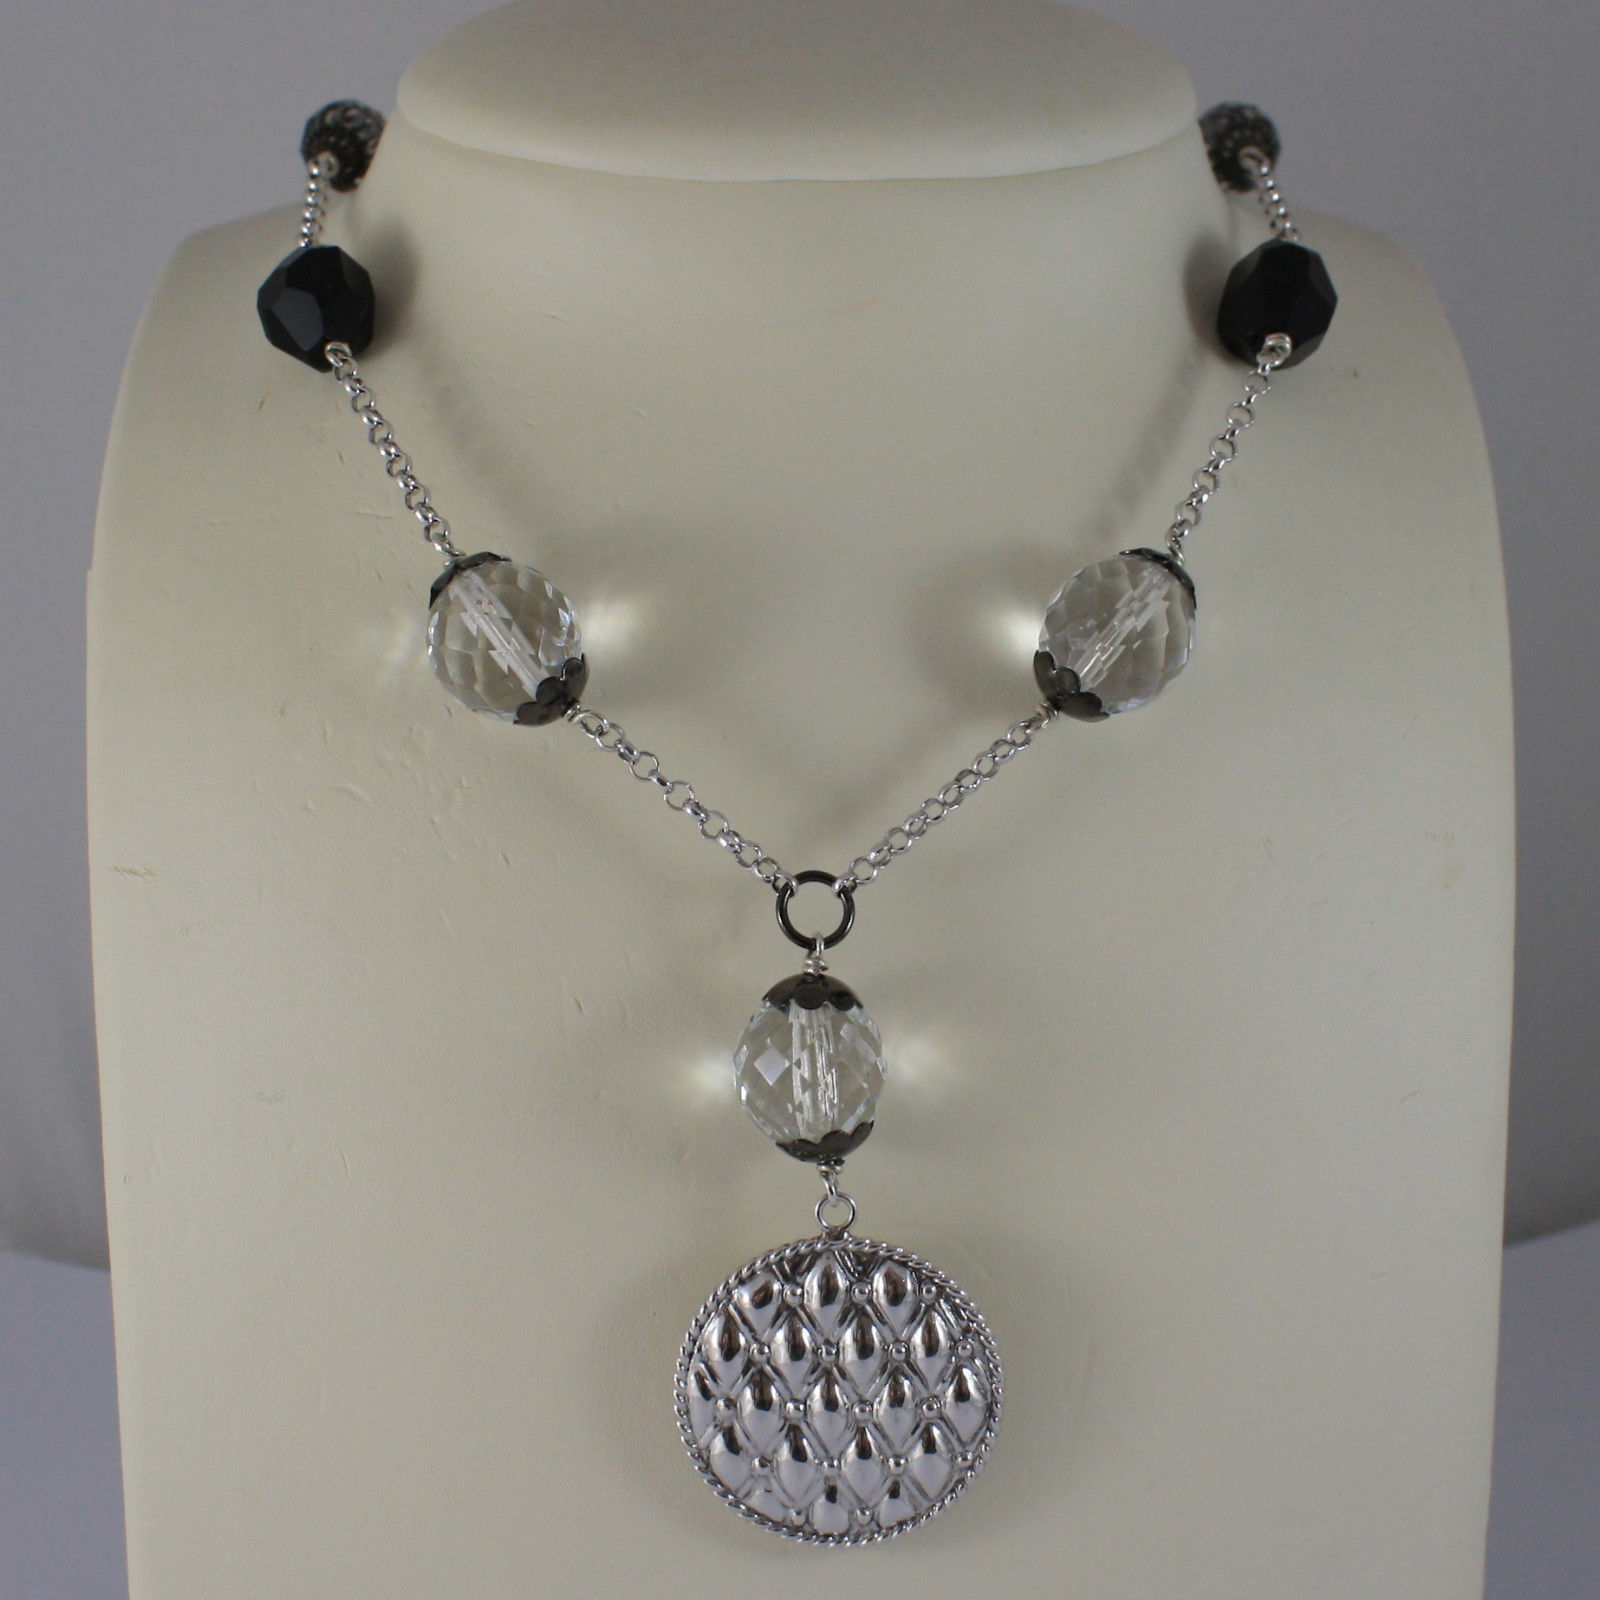 .925 SILVER RHODIUM NECKLACE WITH BLACK ONYX, TRANSPARENT CRYSTALS AND PENDANT